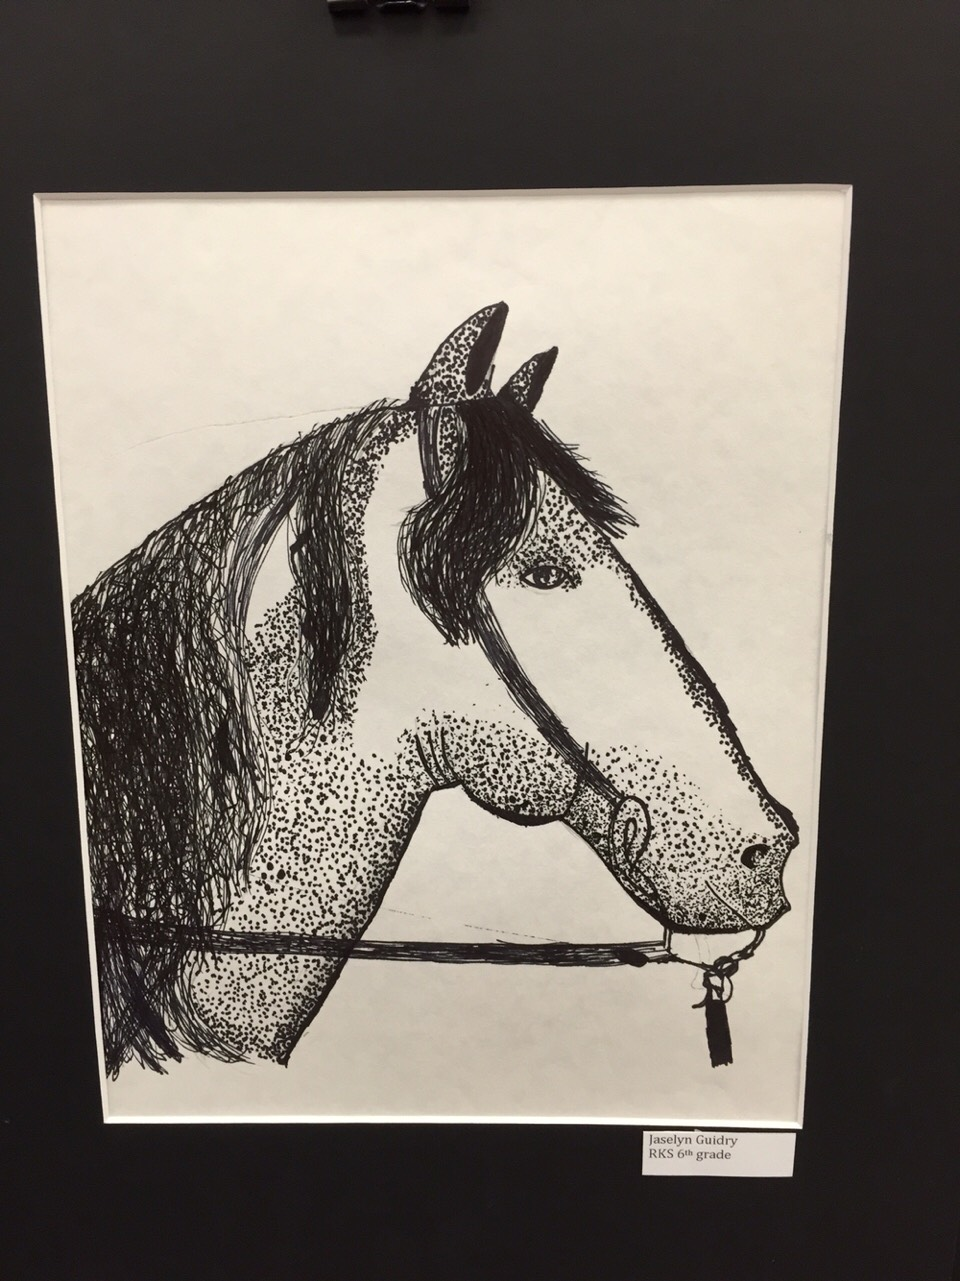 I made this in talented art I searched up a pic of a horse and tried the best I can. In class I was learning how to used dots to make a shadow.